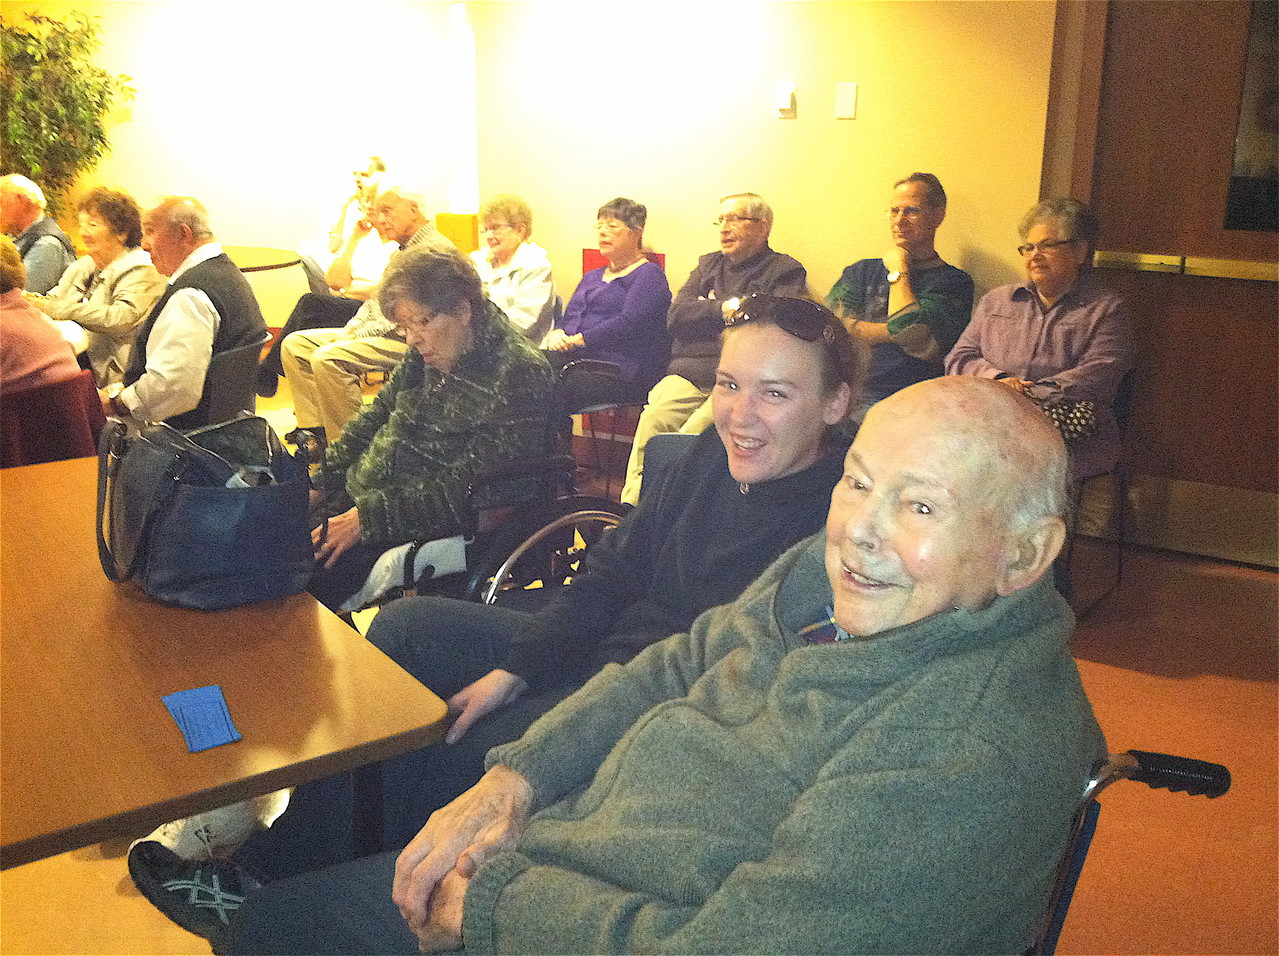 Al & El Gudas, & Lorraine (not shown) & Alicia attend a variety show at Holy Cross Church 10-14-12